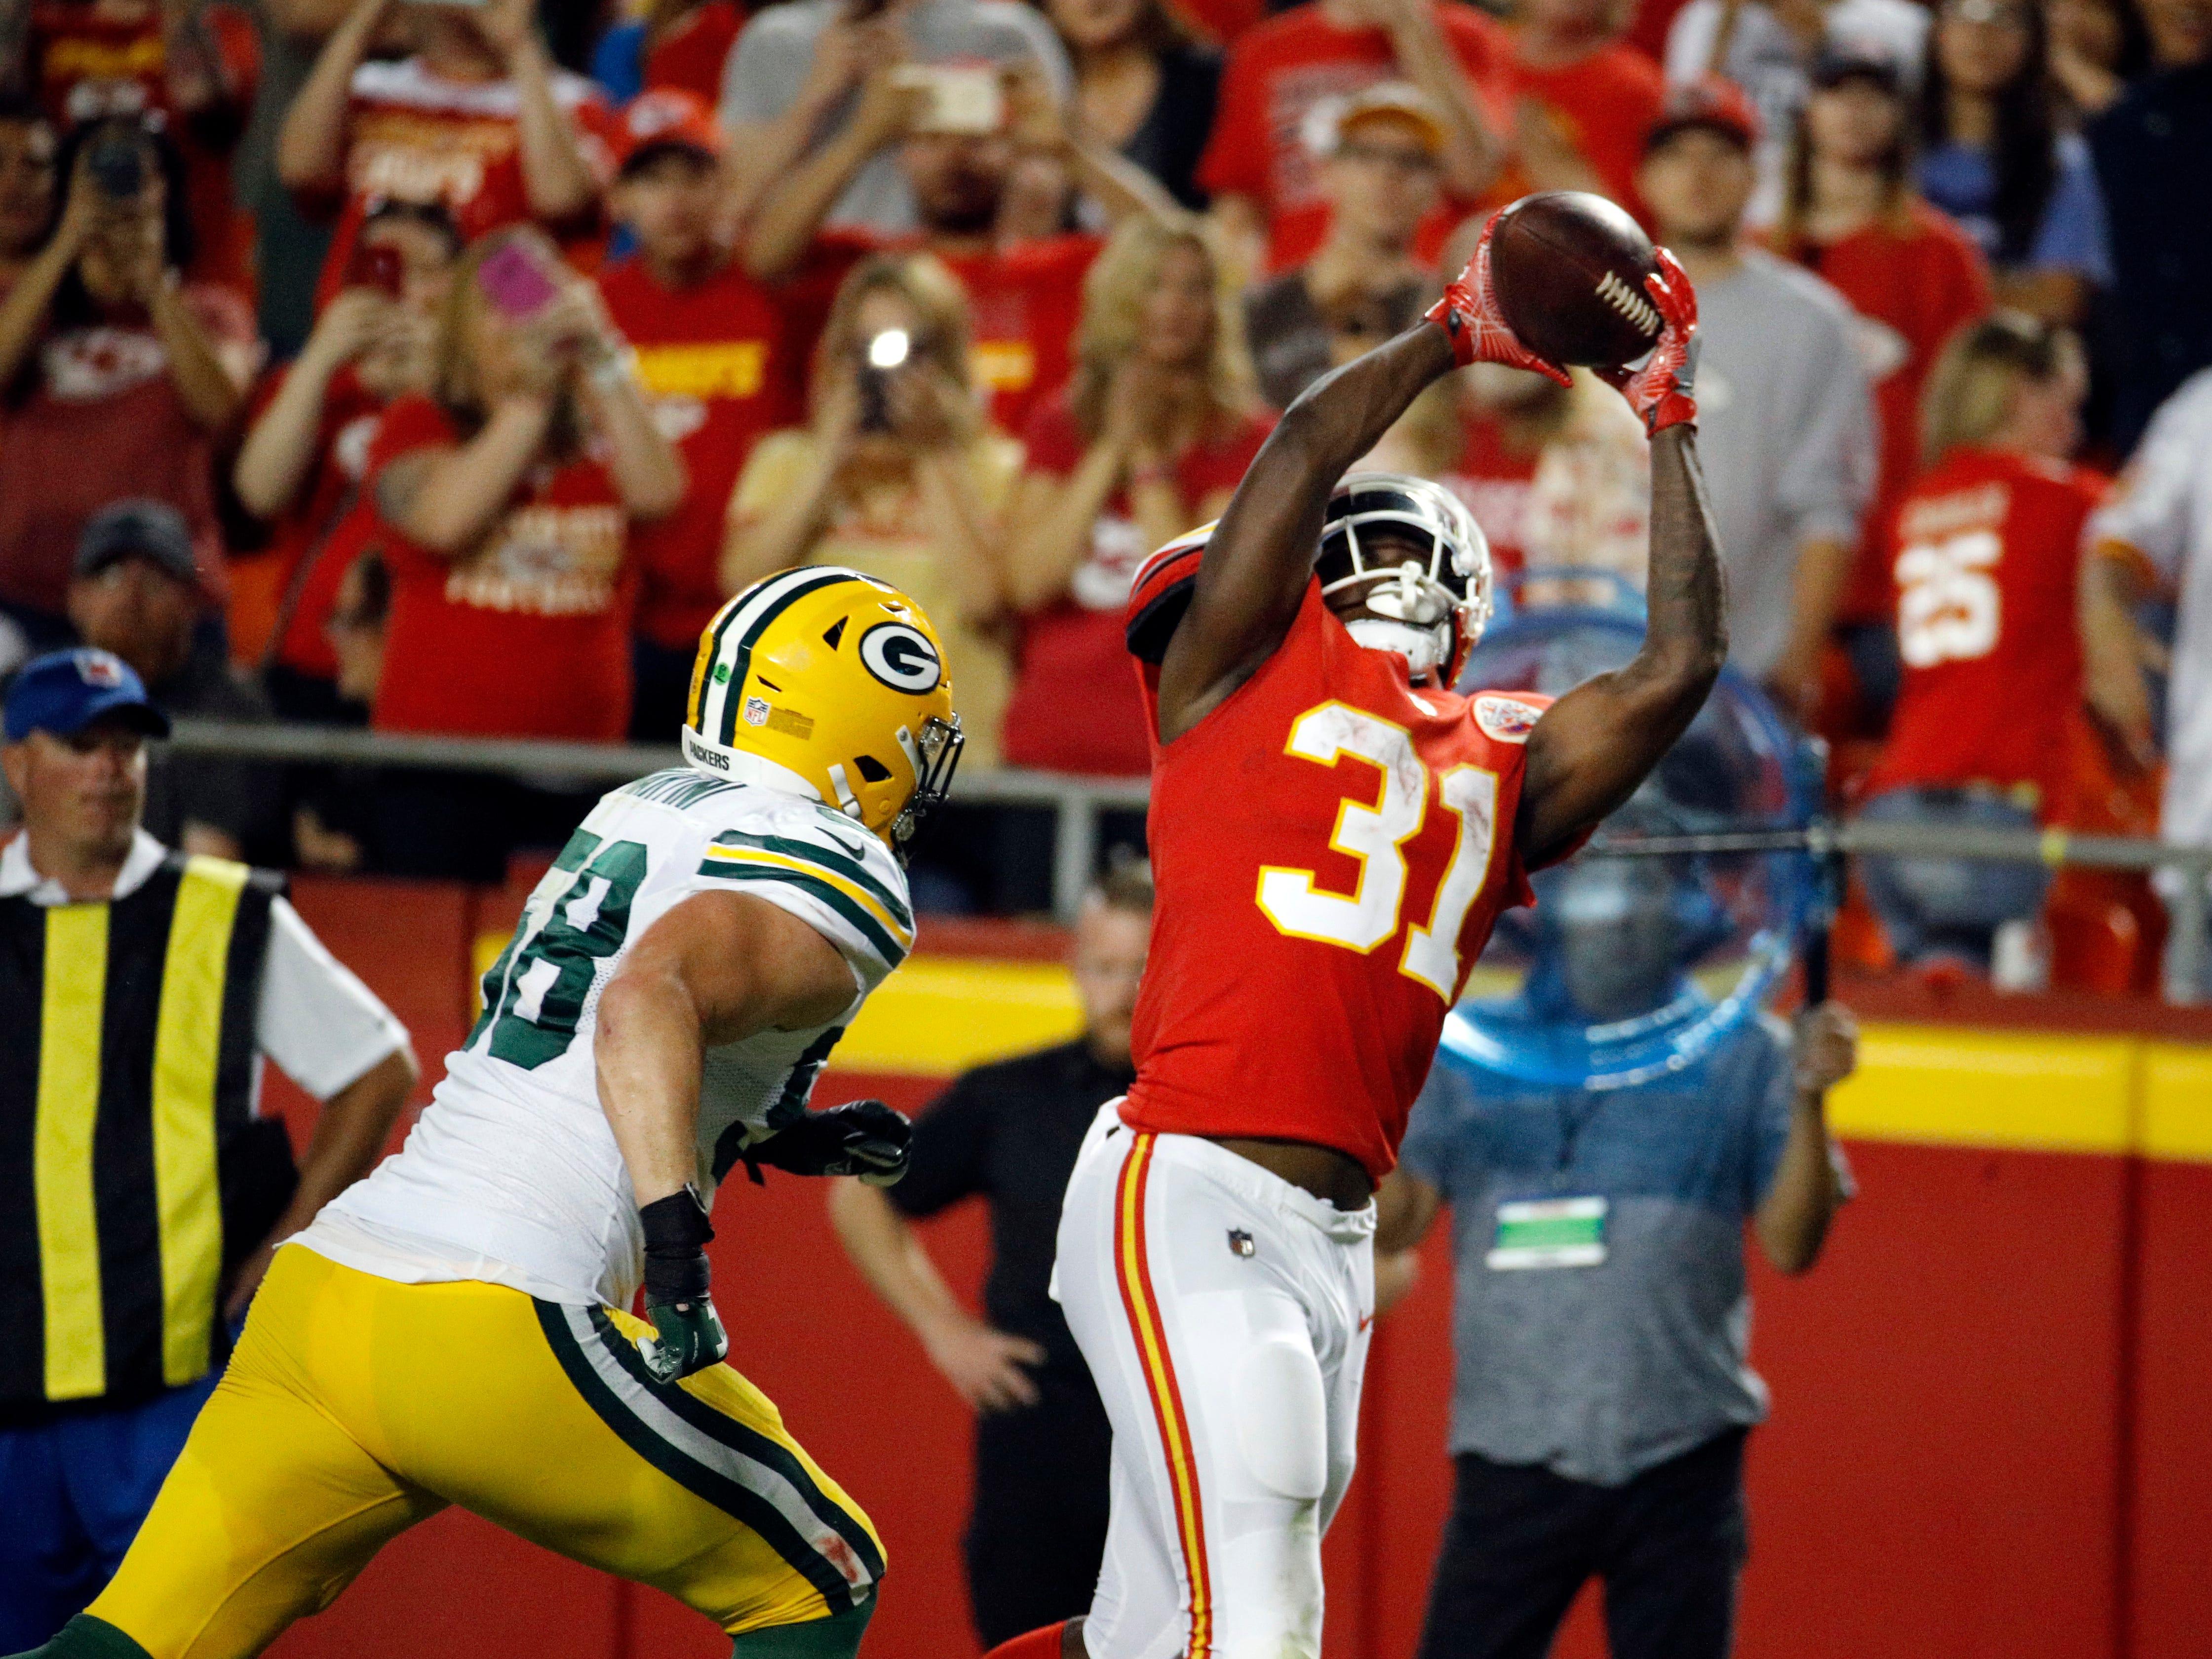 Kansas City Chiefs running back Darrel Williams (31) makes a touchdown catch against Green Bay Packers linebacker Greer Martini (58) during the first half of an NFL preseason football game in Kansas City, Mo., Thursday, Aug. 30, 2018.